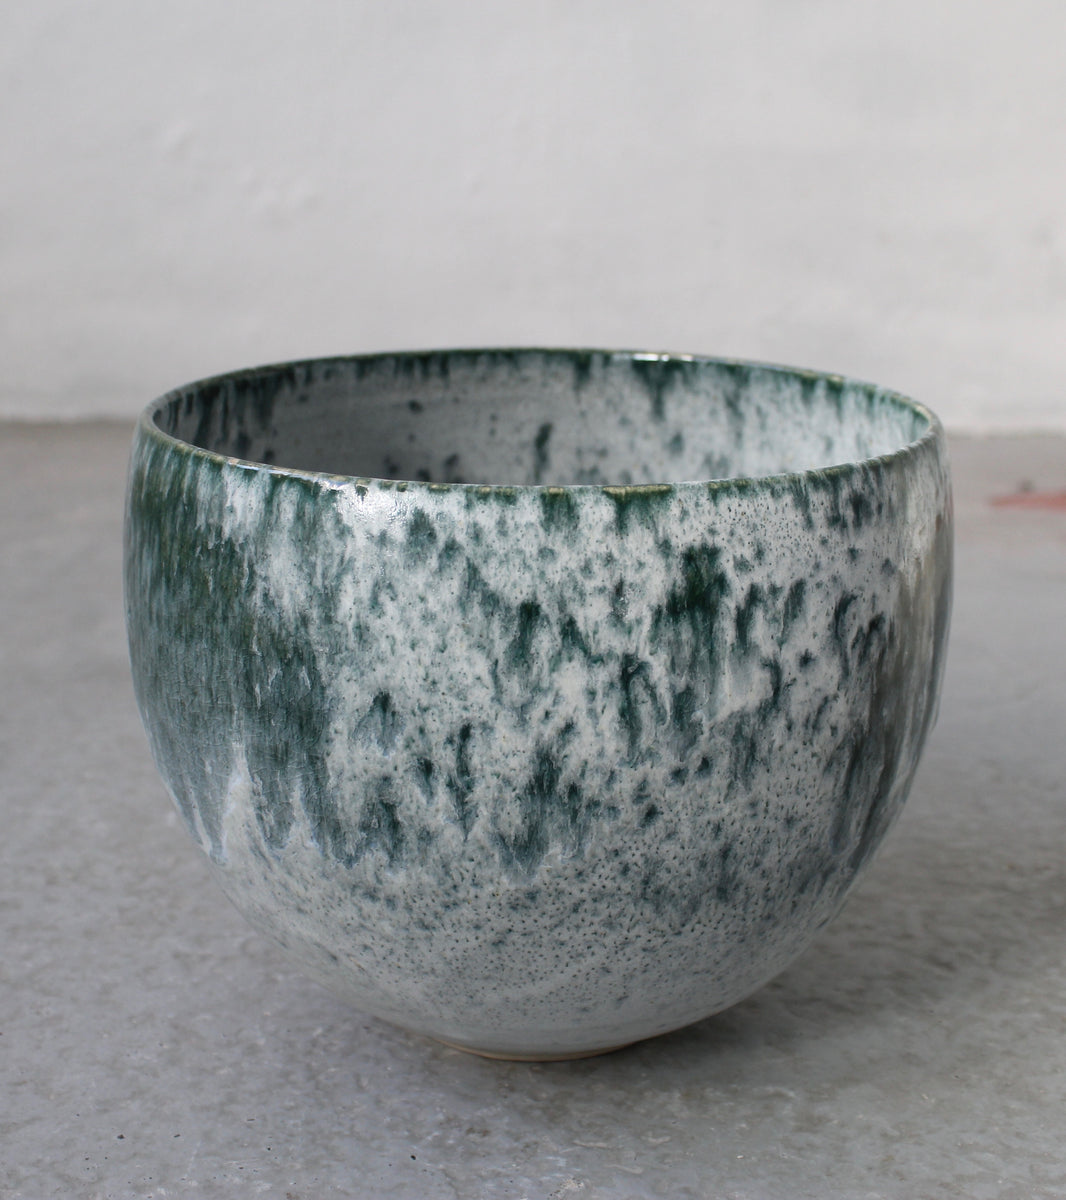 '#15' Short Bell Shaped Planter <br> Teal & White Glaze